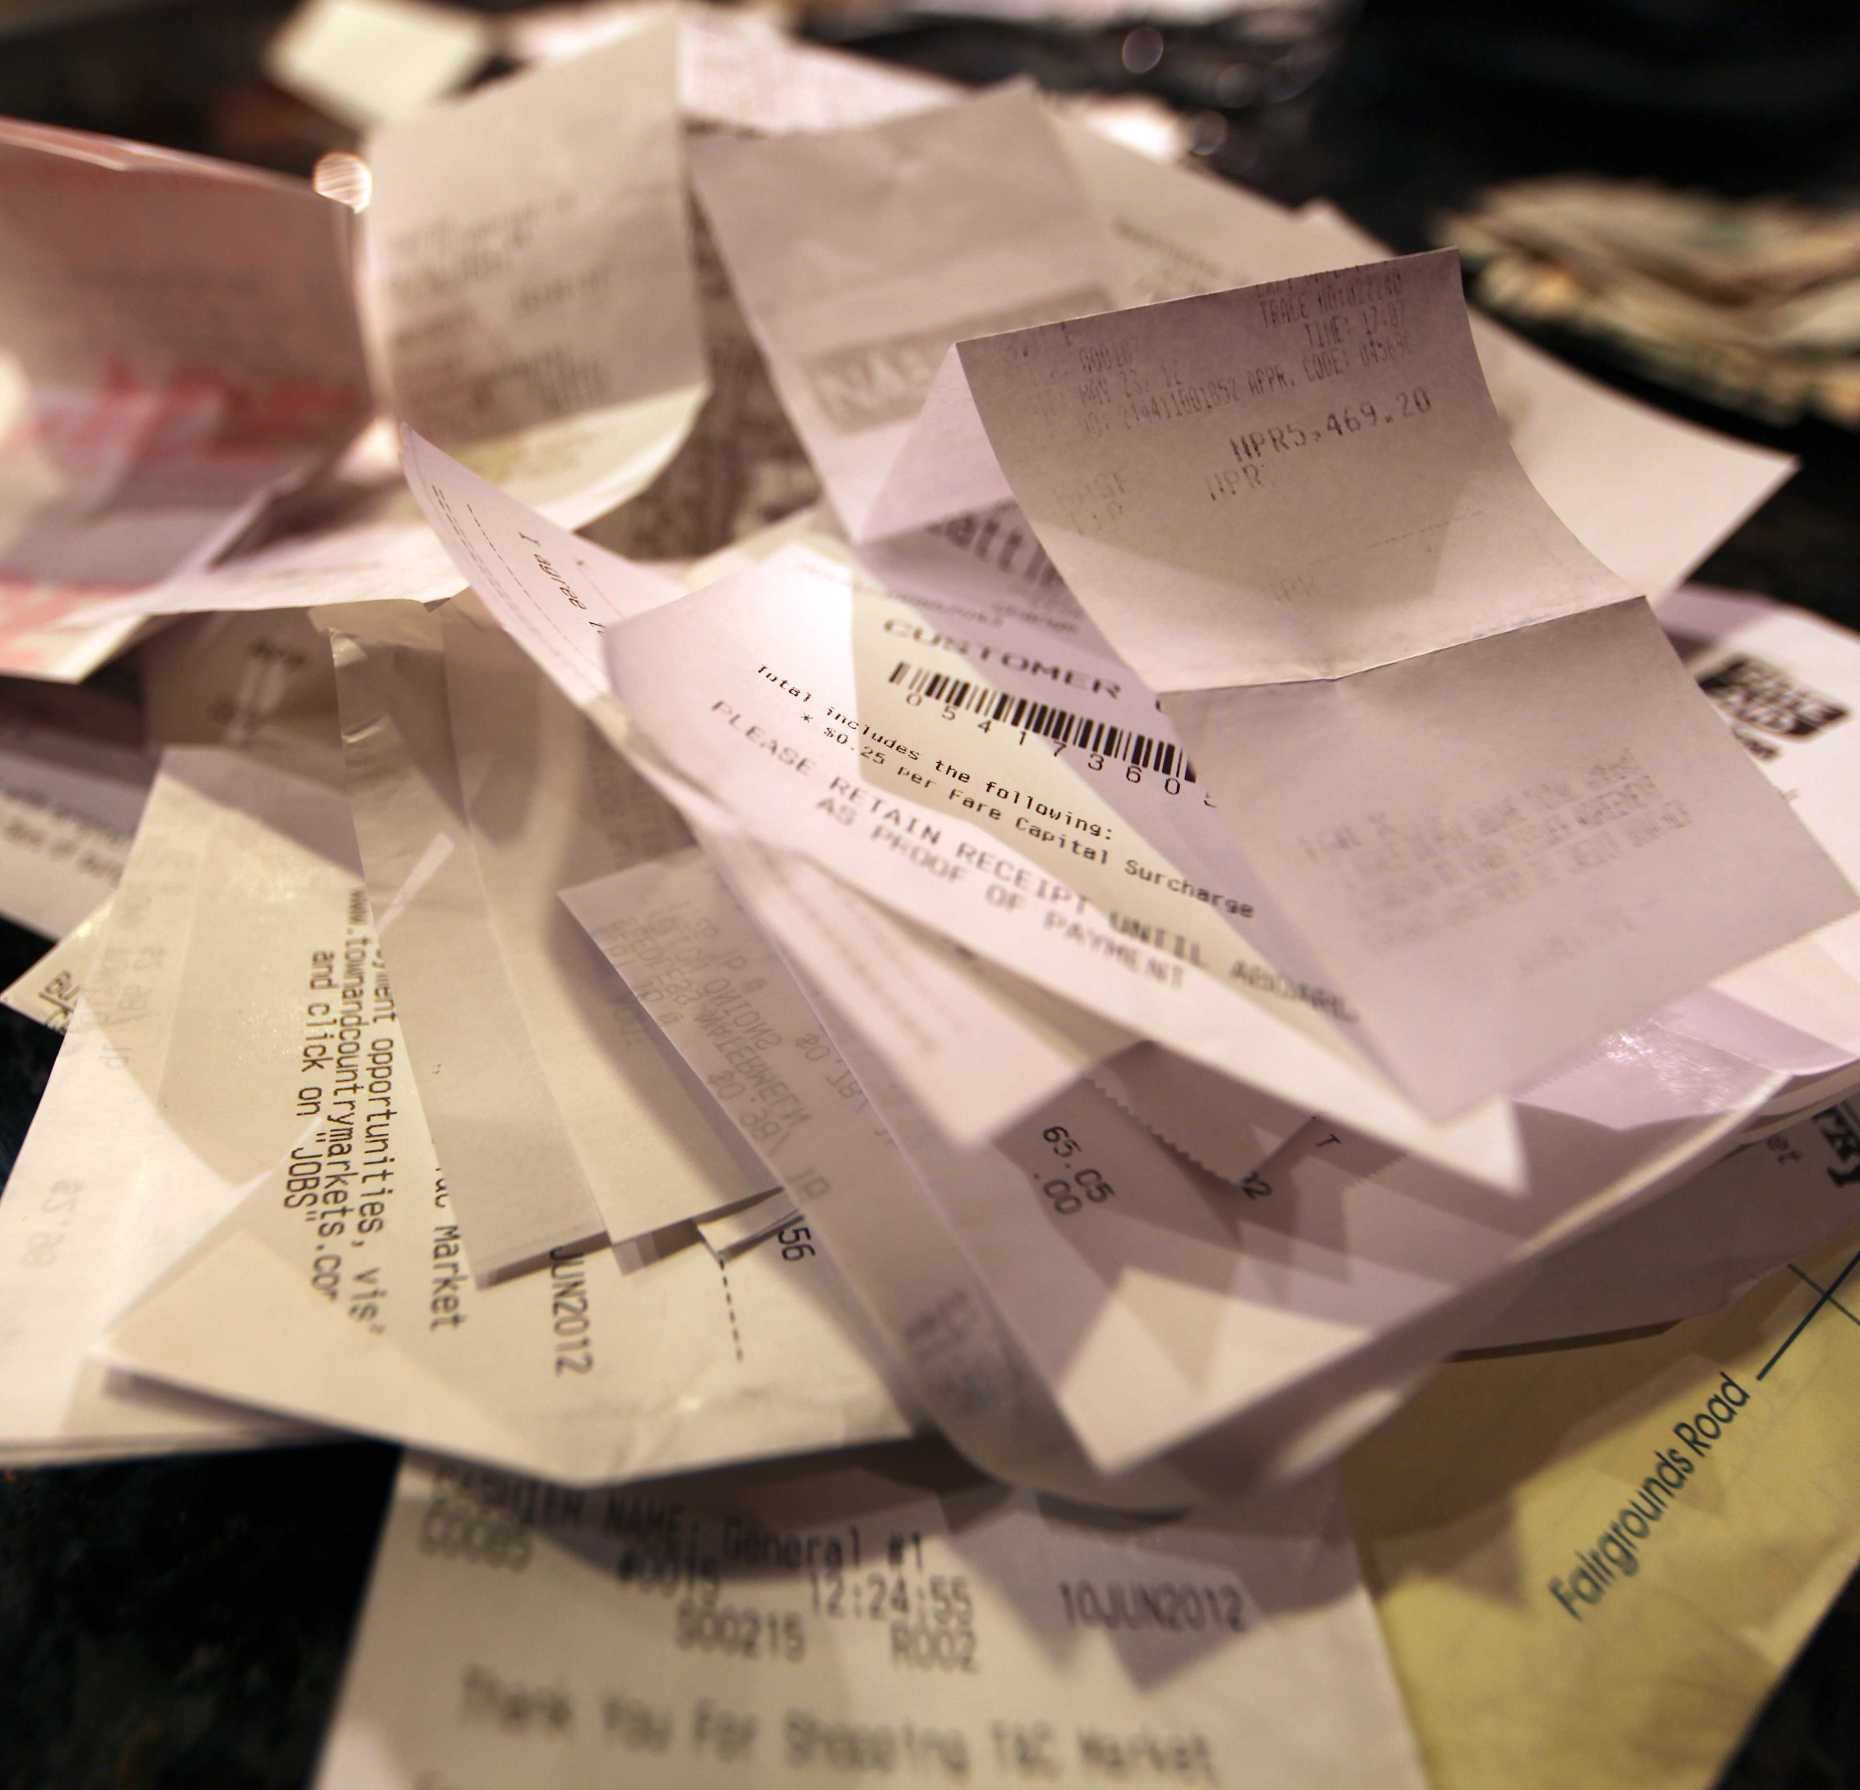 The bad guys: Thermal receipts have more BPA (that transfers into your skin upon contact) than any other paper, can, or plastic. Photo © Liesl Clark